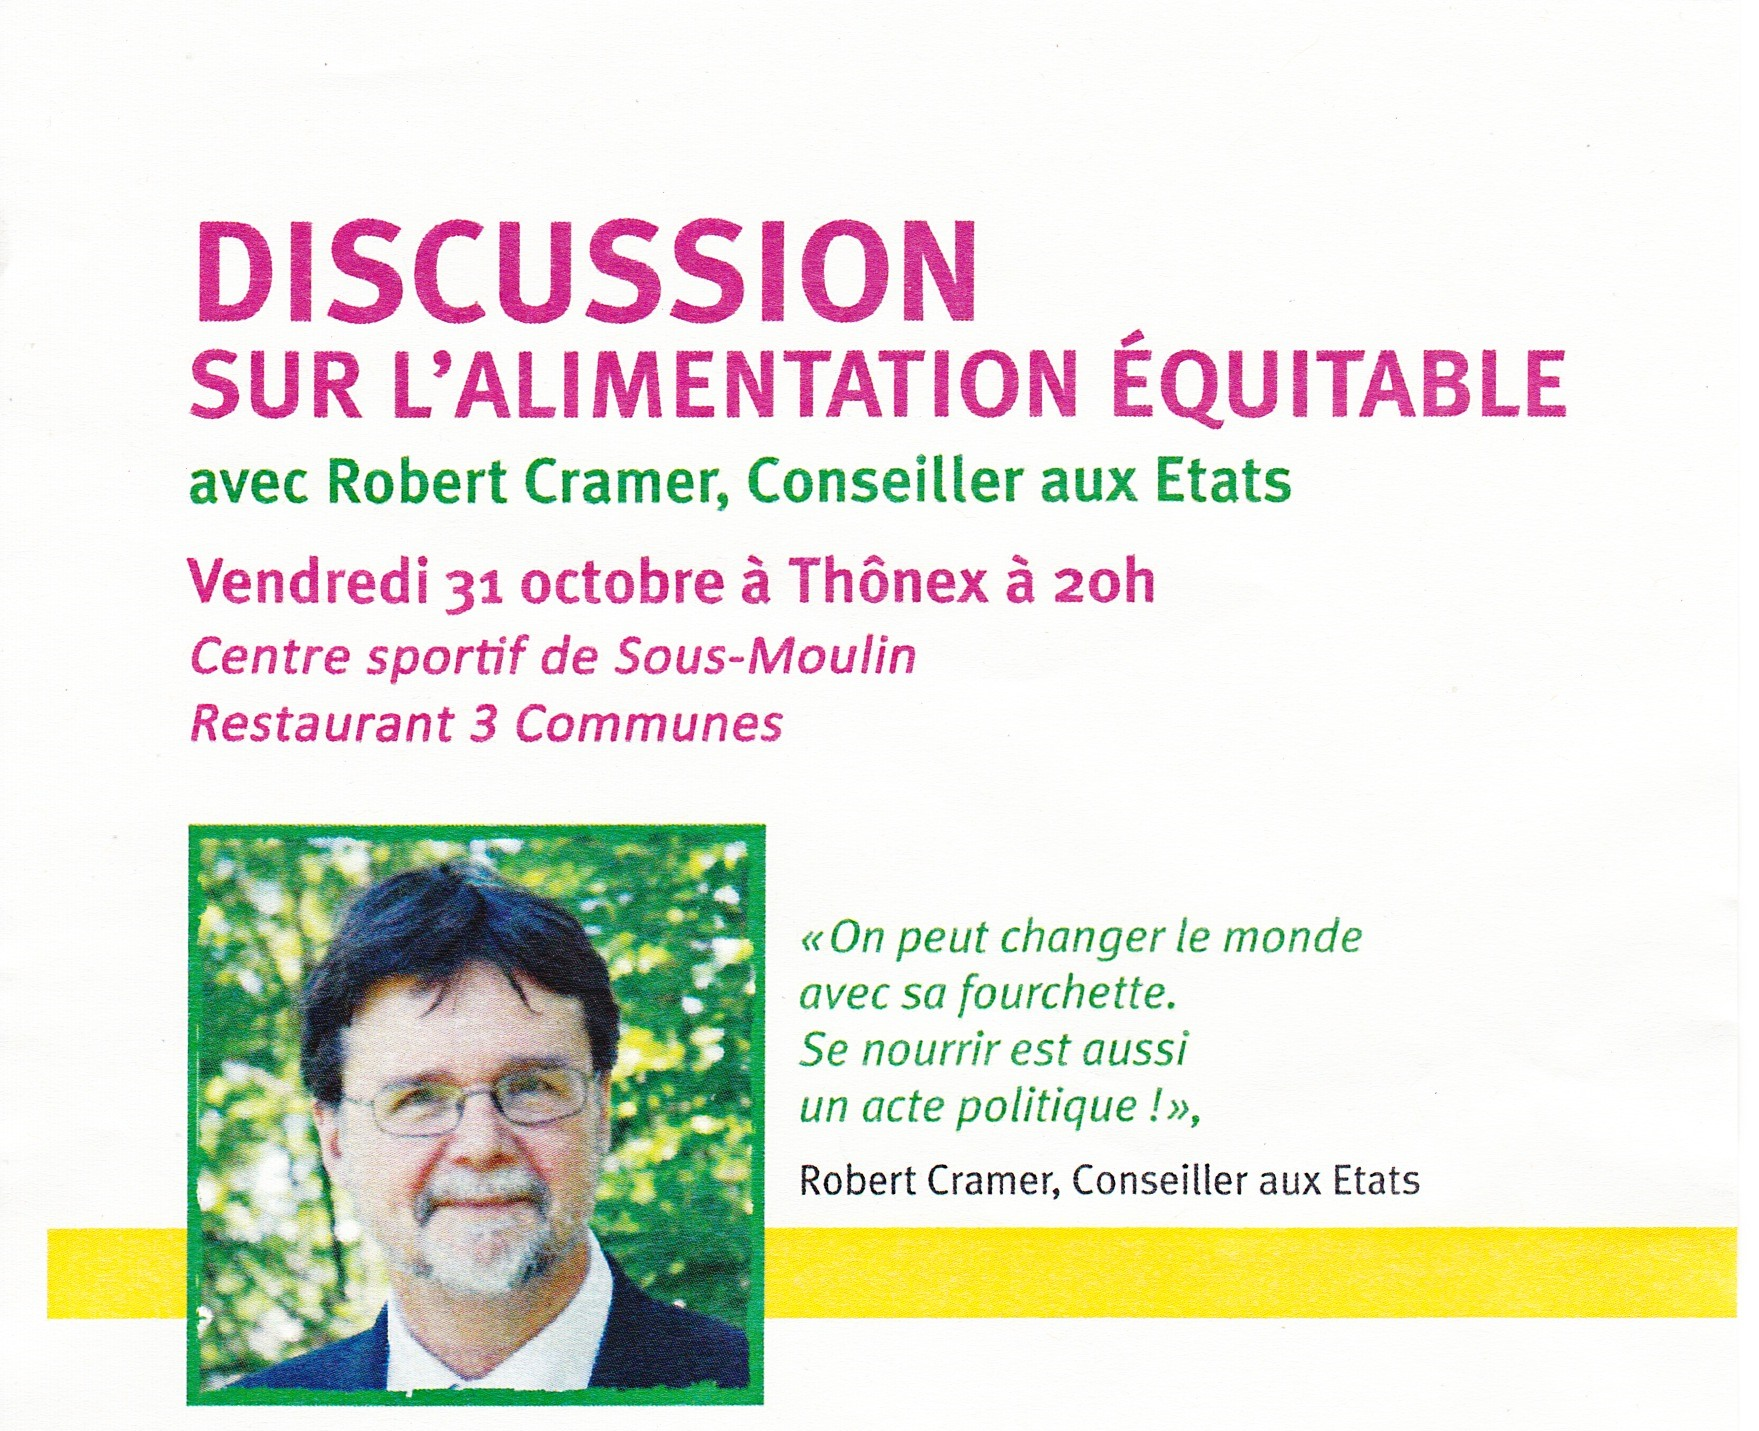 Affiche de  la discussion du 31 octobre 2014 sur l'Alimentation équitable à 20 h. au Restaurant du Centre sportif de Sous-Moulin